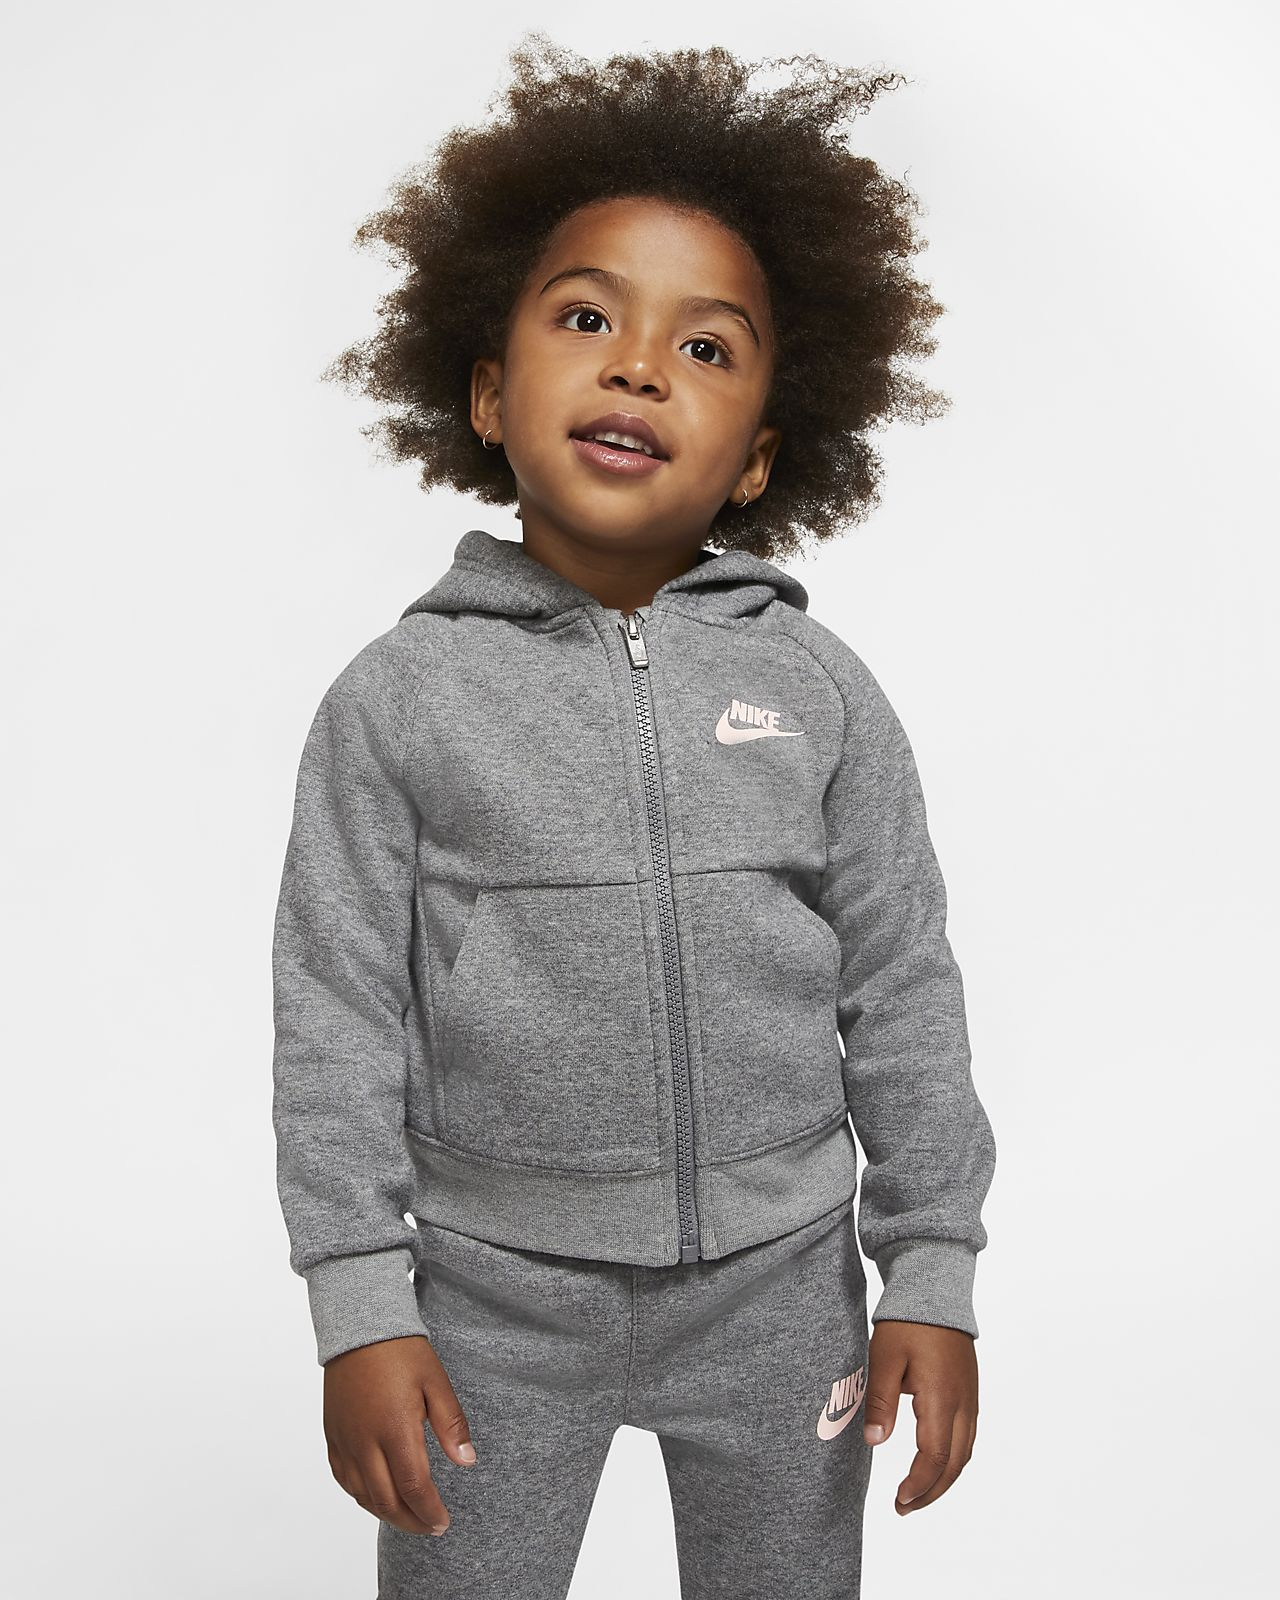 Nike Toddler Hoodie and Joggers 2-Piece Set